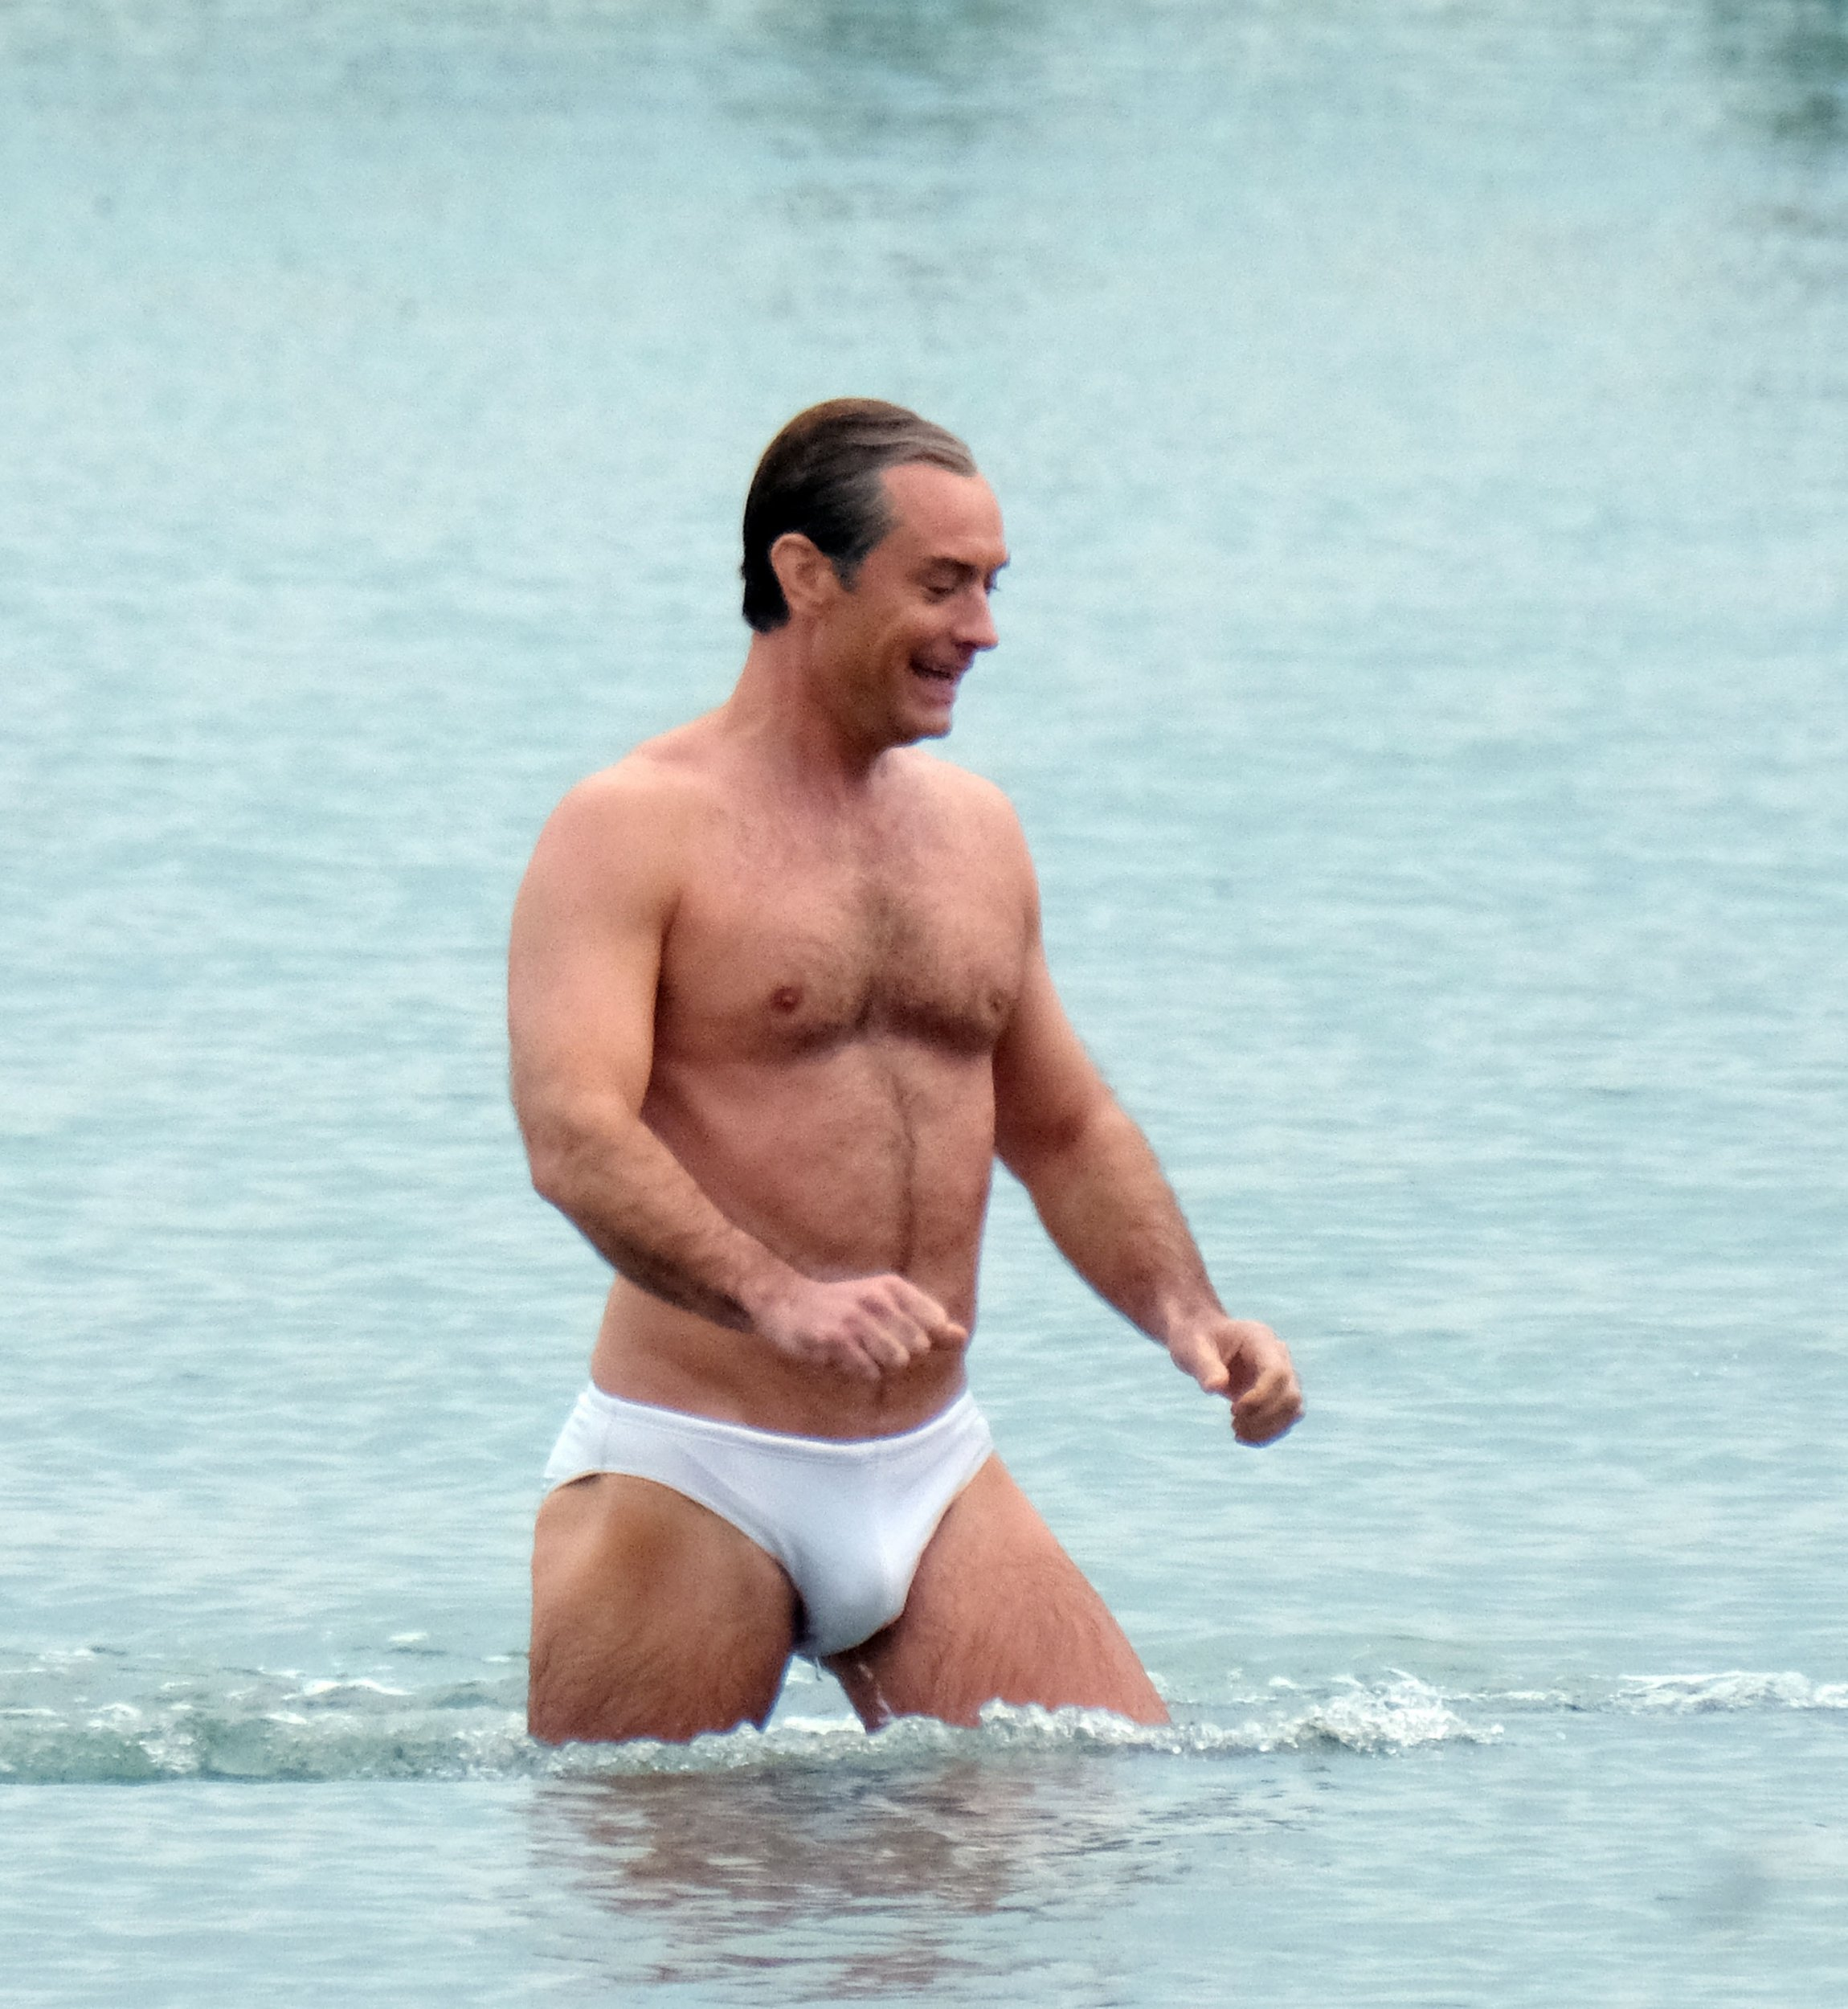 """BGUK_1543732 - ** RIGHTS: ONLY UNITED KINGDOM ** Venice, ITALY - British Actor Jude law shows off his toned Physique as he's pictured filming in his Y fronts Briefs while pictured filming TV series """"The new Pope"""" in Venice. Jude looked in Good spirits as he was seen laughing while leaving the sea with a crew member! Pictured: Jude law BACKGRID UK 9 APRIL 2019 BYLINE MUST READ: CIAOPIX / BACKGRID UK: +44 208 344 2007 / uksales@backgrid.com USA: +1 310 798 9111 / usasales@backgrid.com *UK Clients - Pictures Containing Children Please Pixelate Face Prior To Publication*"""